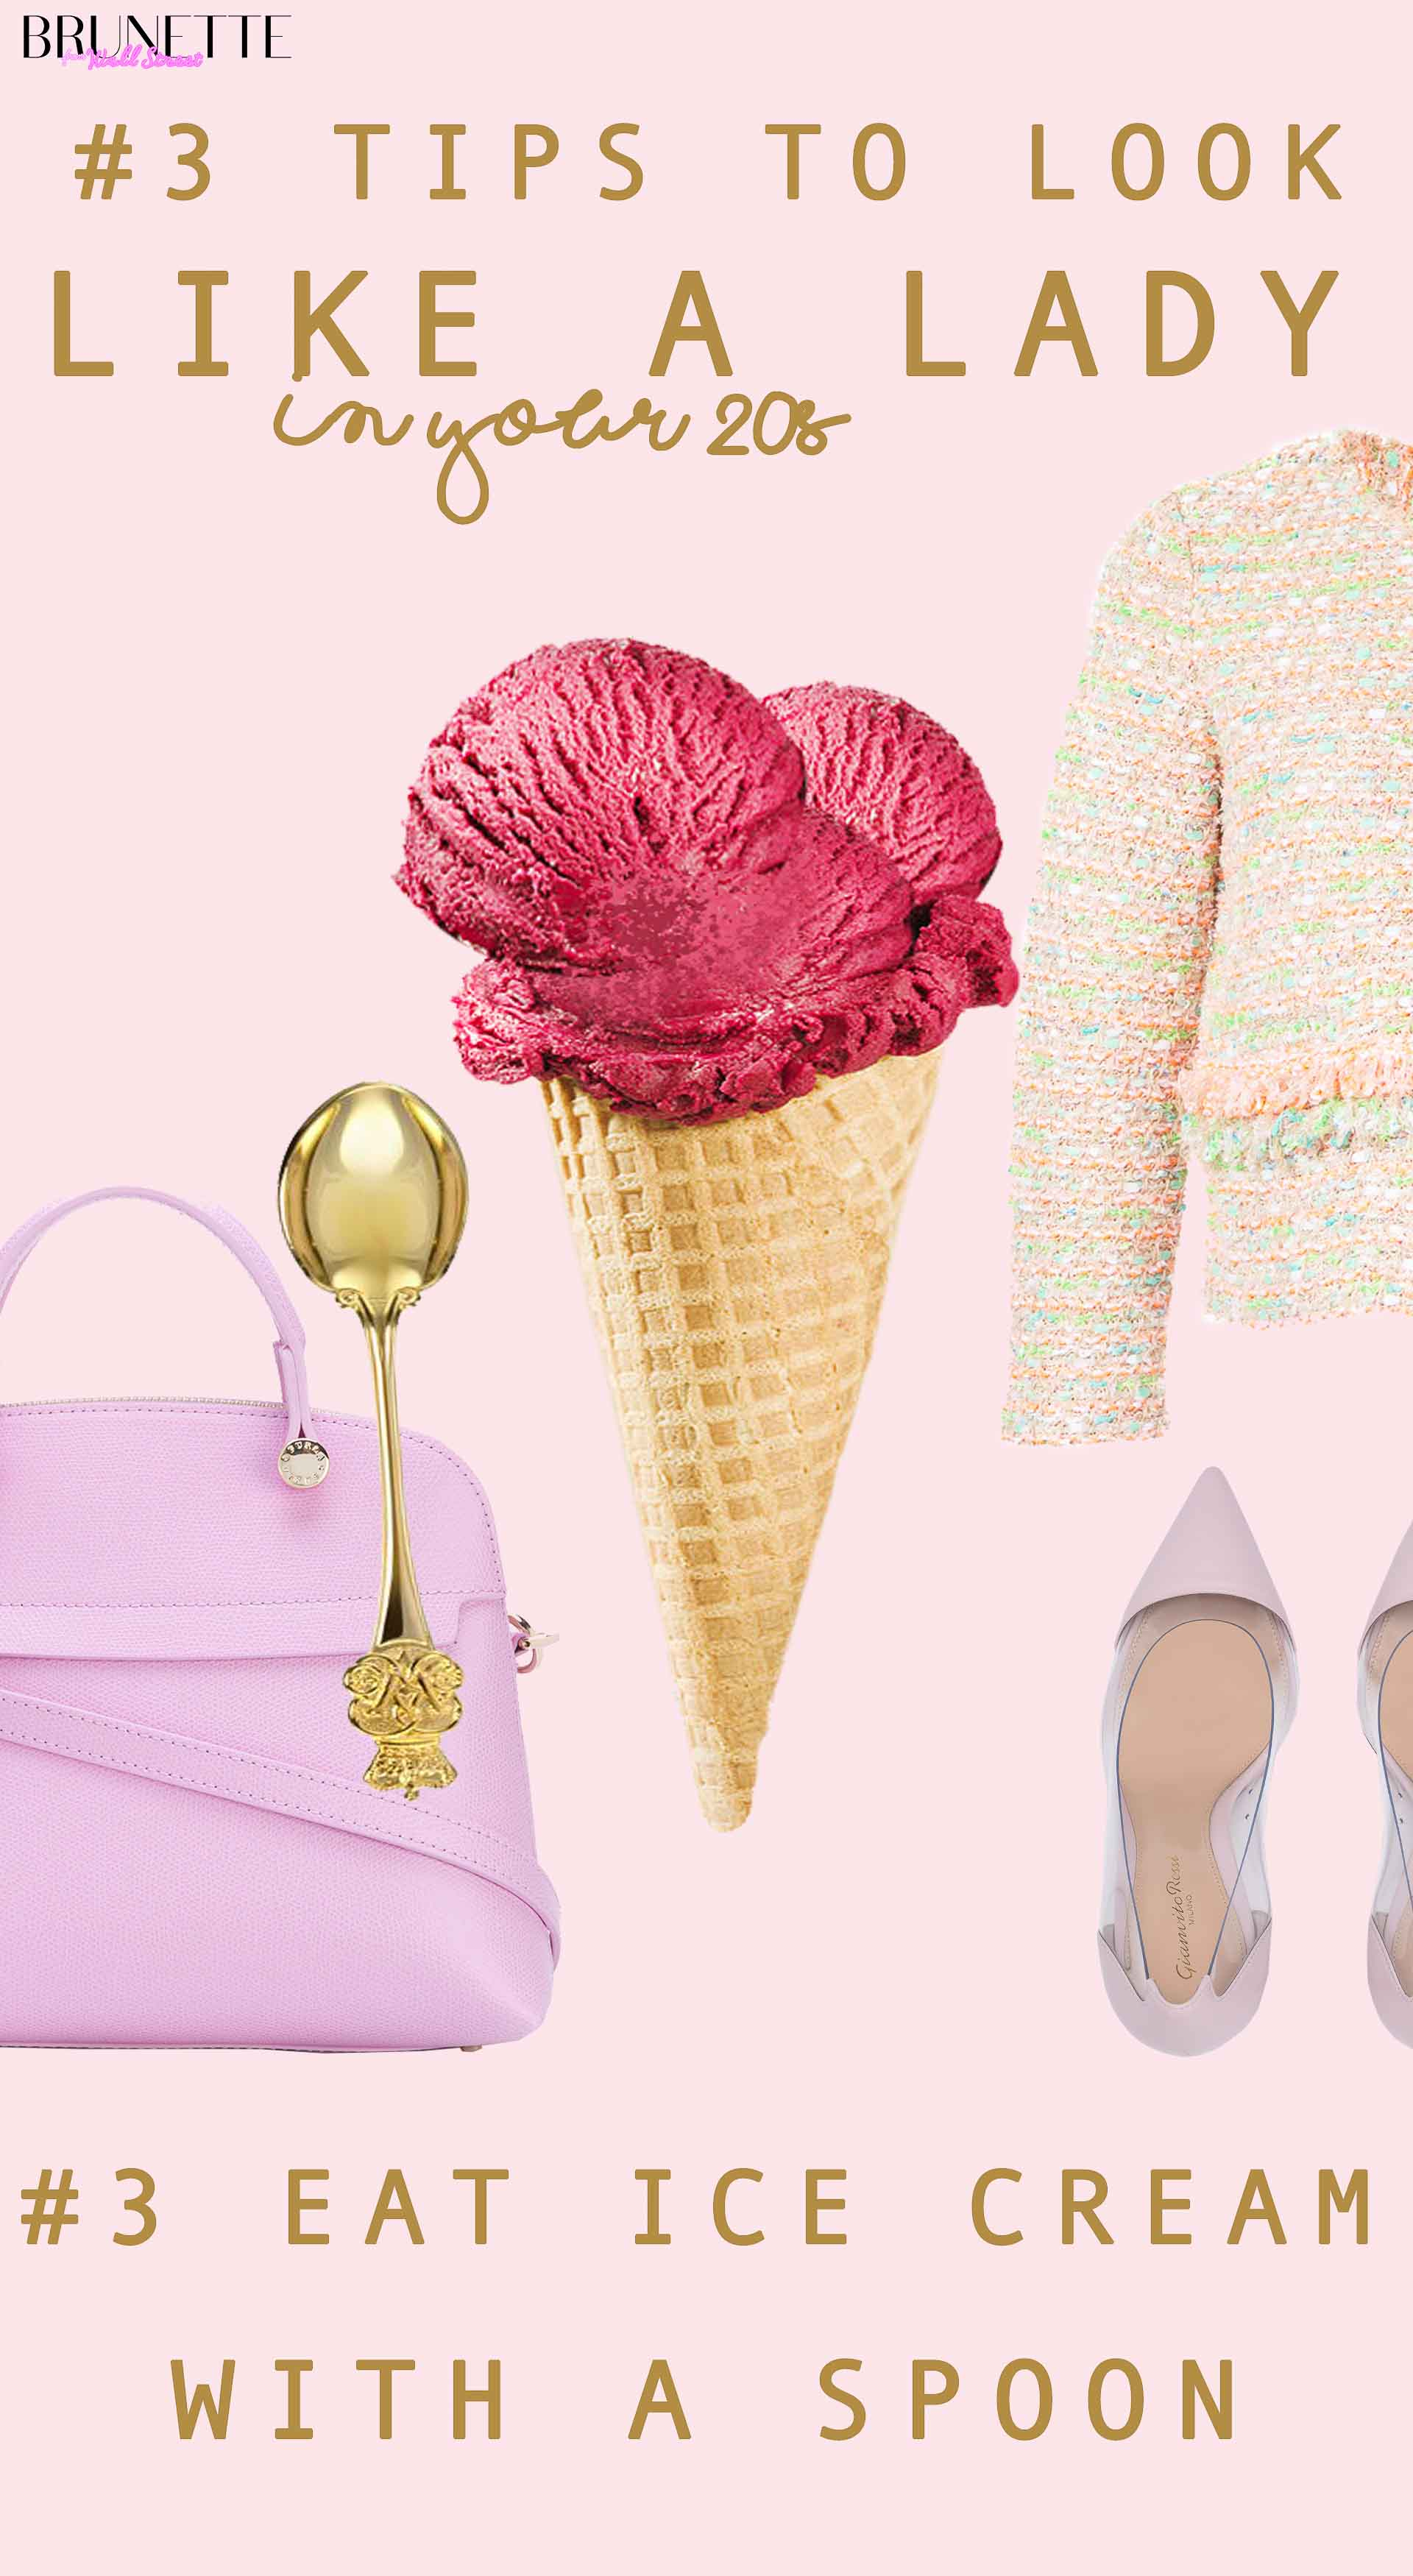 #3 tips to look like a lady in your 20s #3 eat ice cream with a spoon